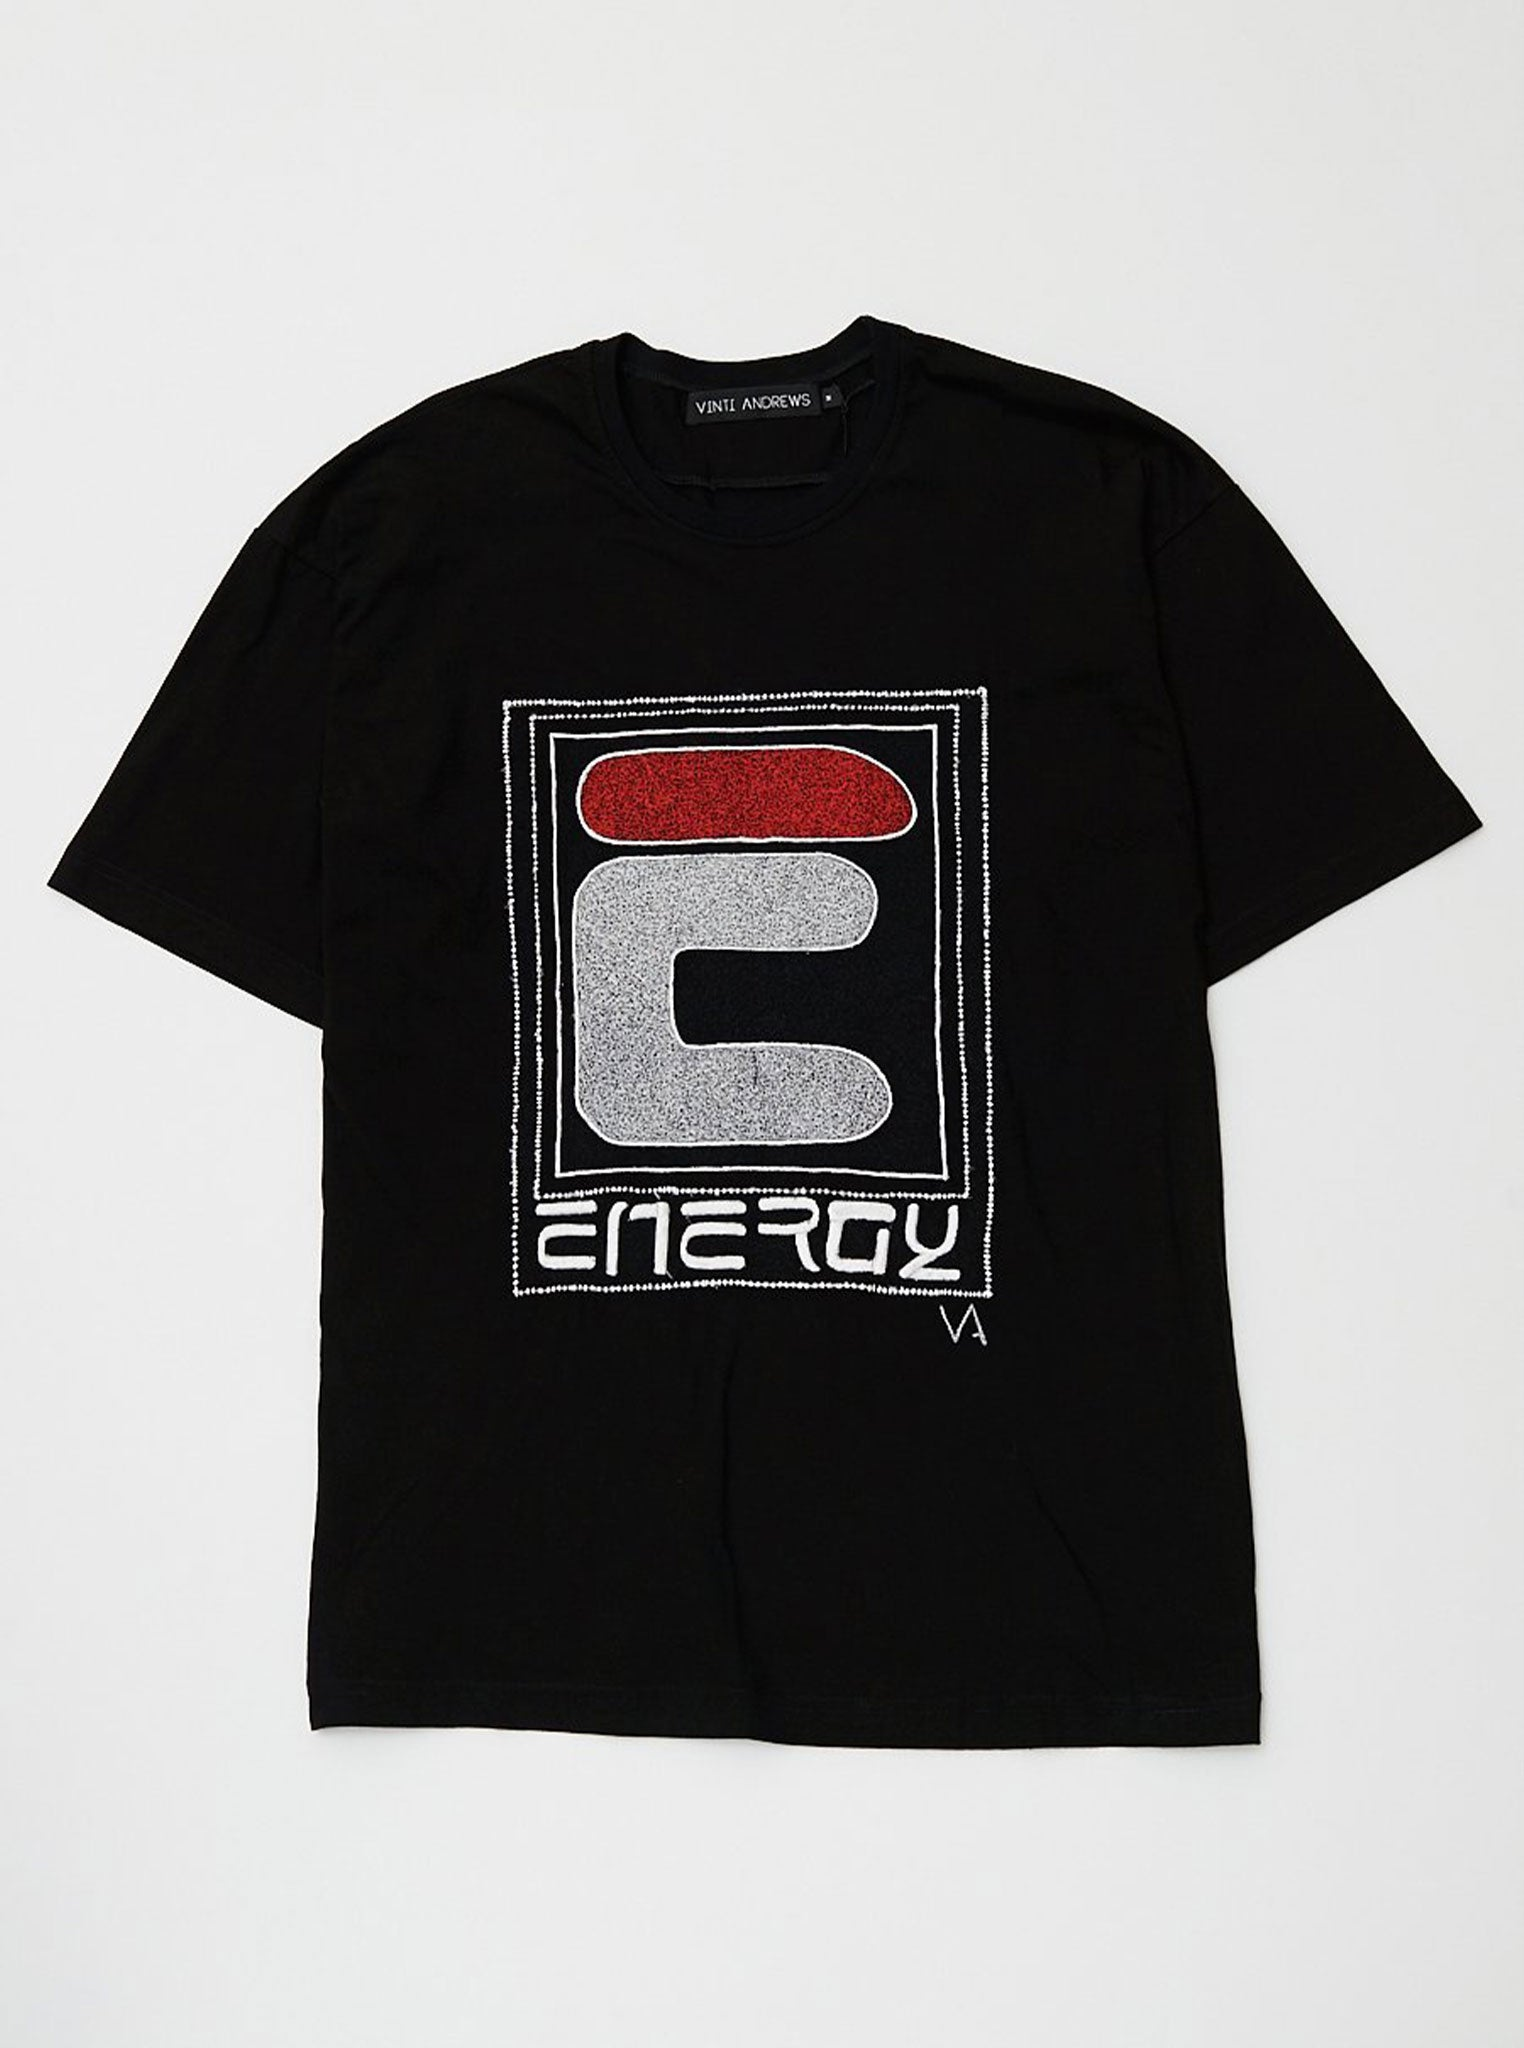 Vinti Andrews Embroidery Energy Oversize T-Shirt